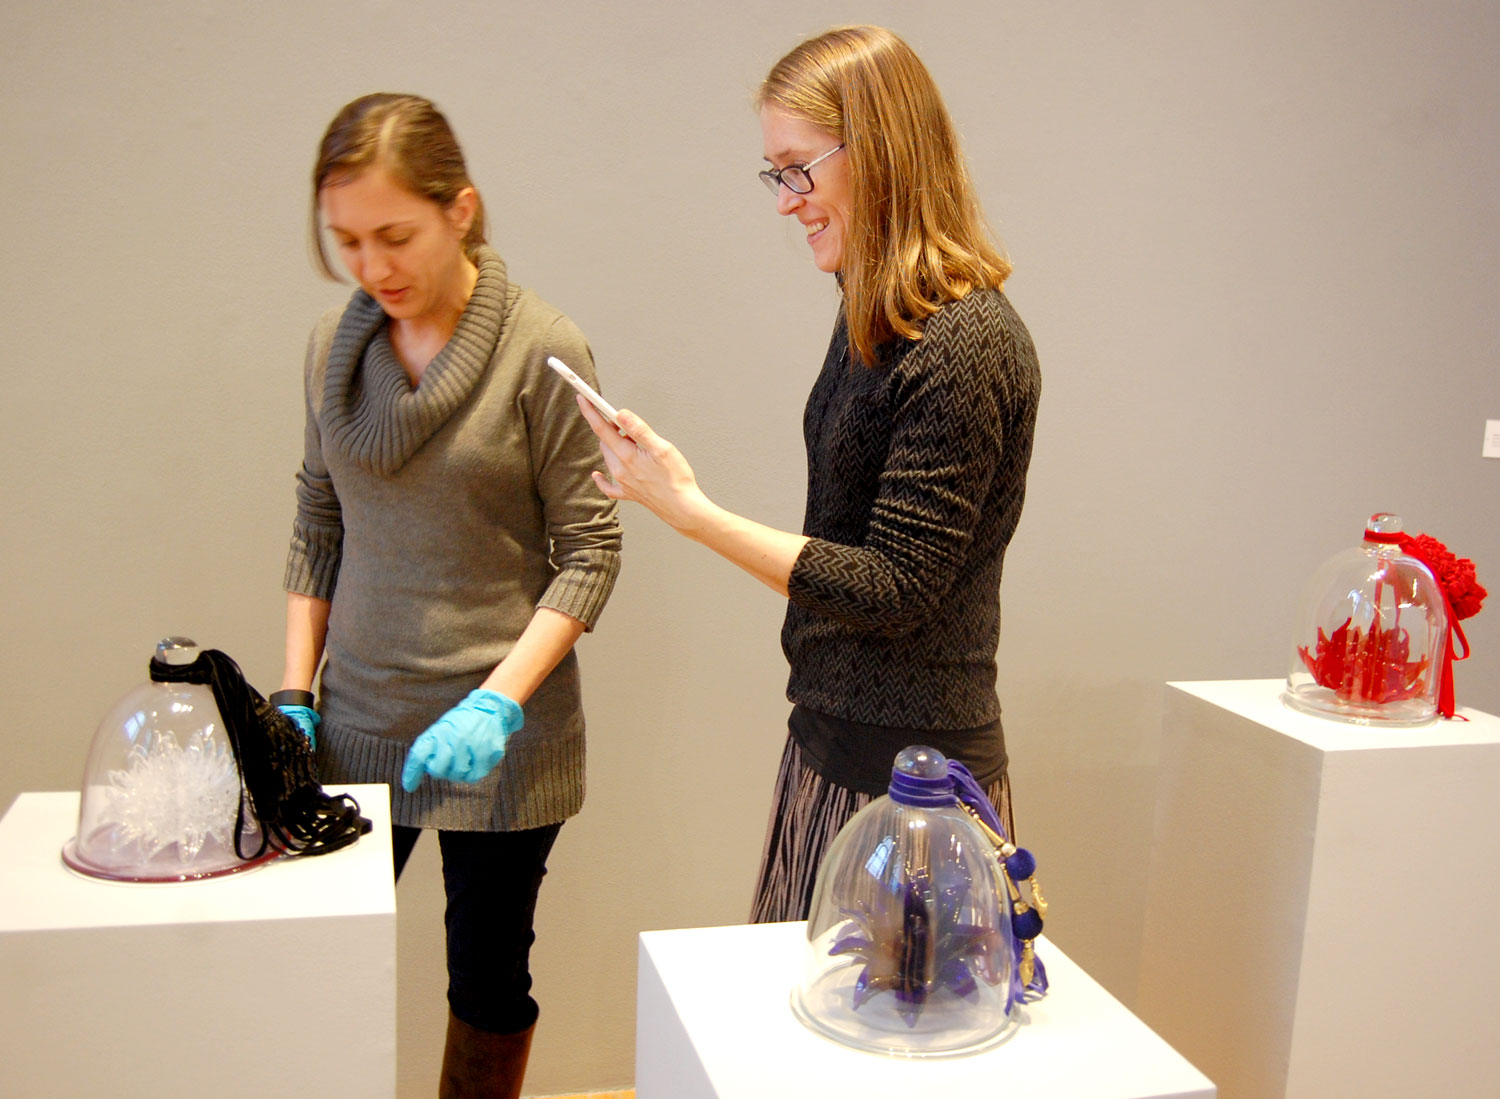 "At MassArt, Chloe Zaug Welch (left) and Darci Hanna carefully install glass sculptures by Petah Coyne in the Paine Gallery exhibit ""Vitreous Bodies: Assembled Visions in Glass."" Jan. 24, 2017. (Greg Cook)"